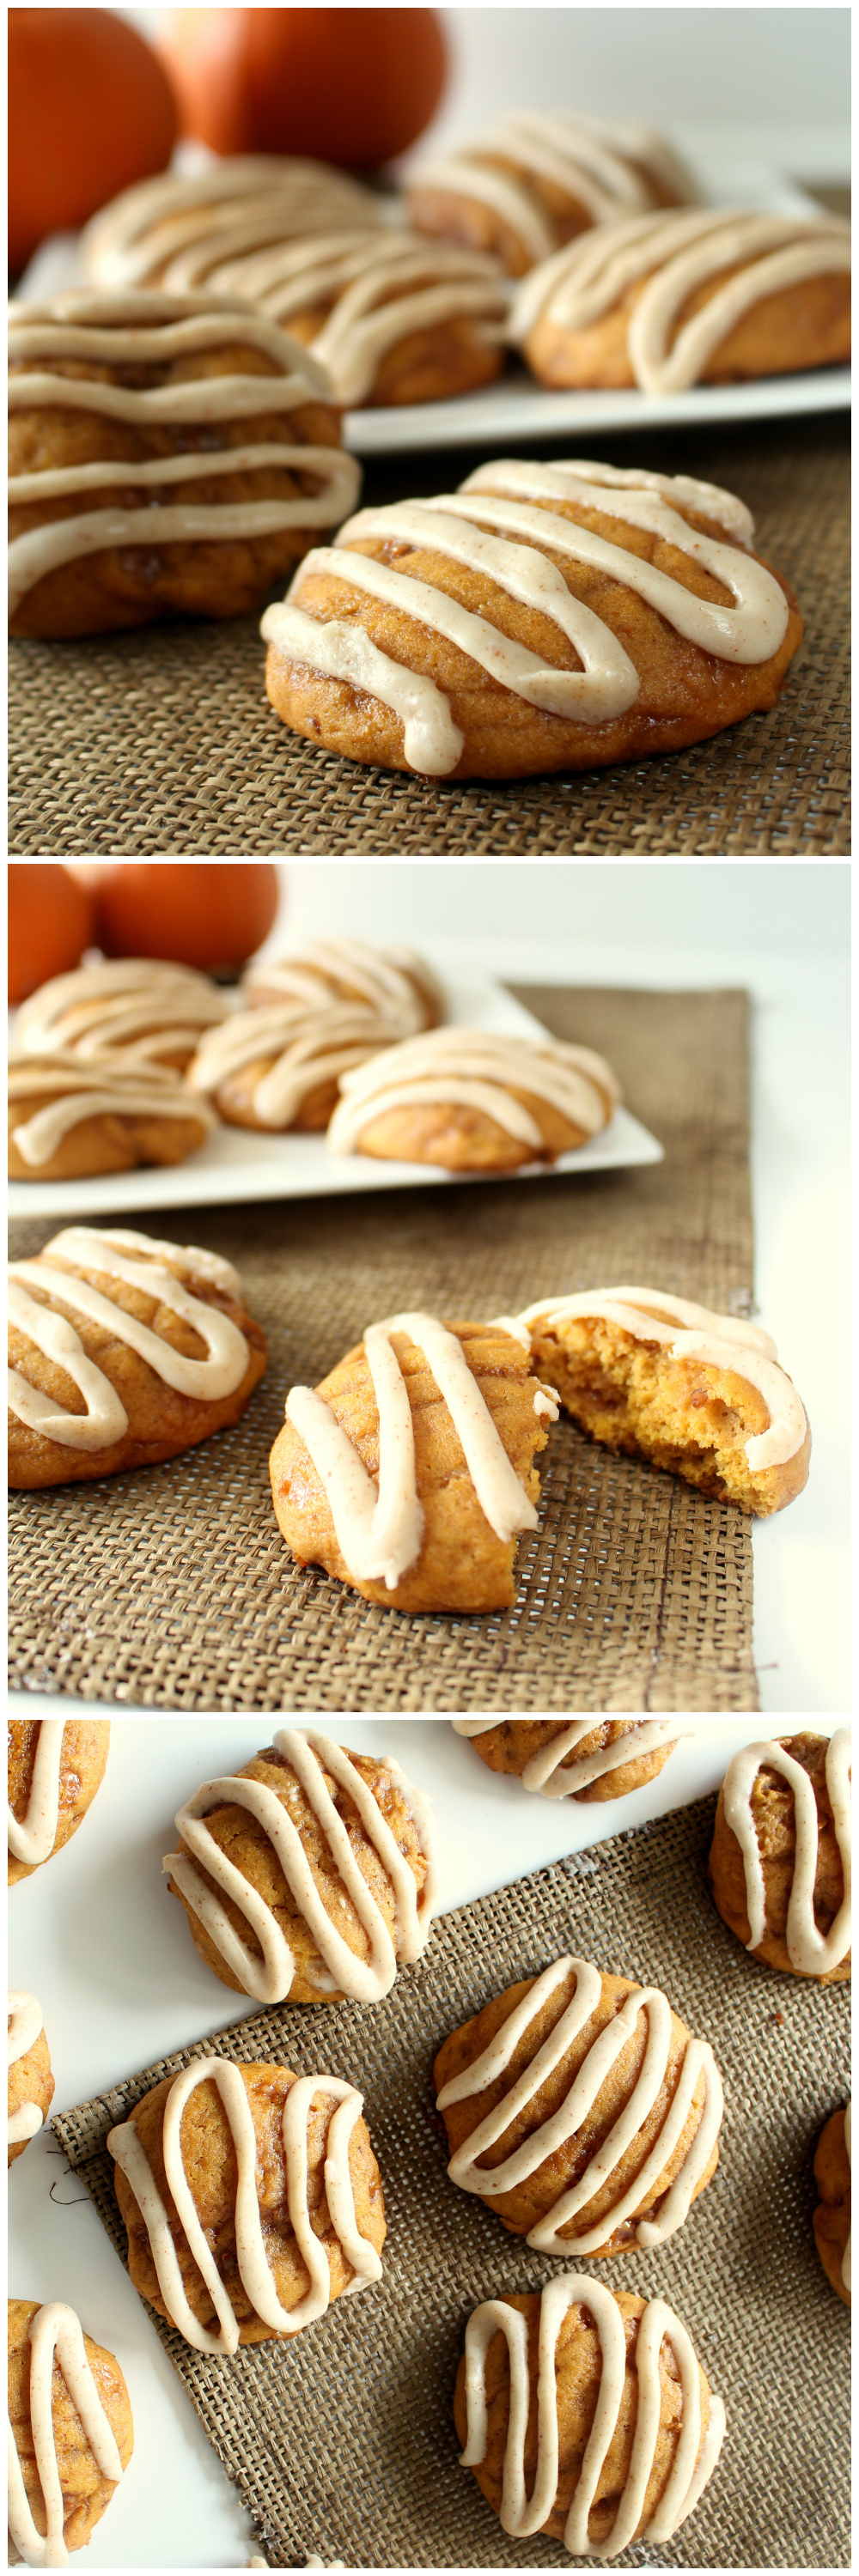 Pumpkin Toffee Cookies with Brown Butter Glaze